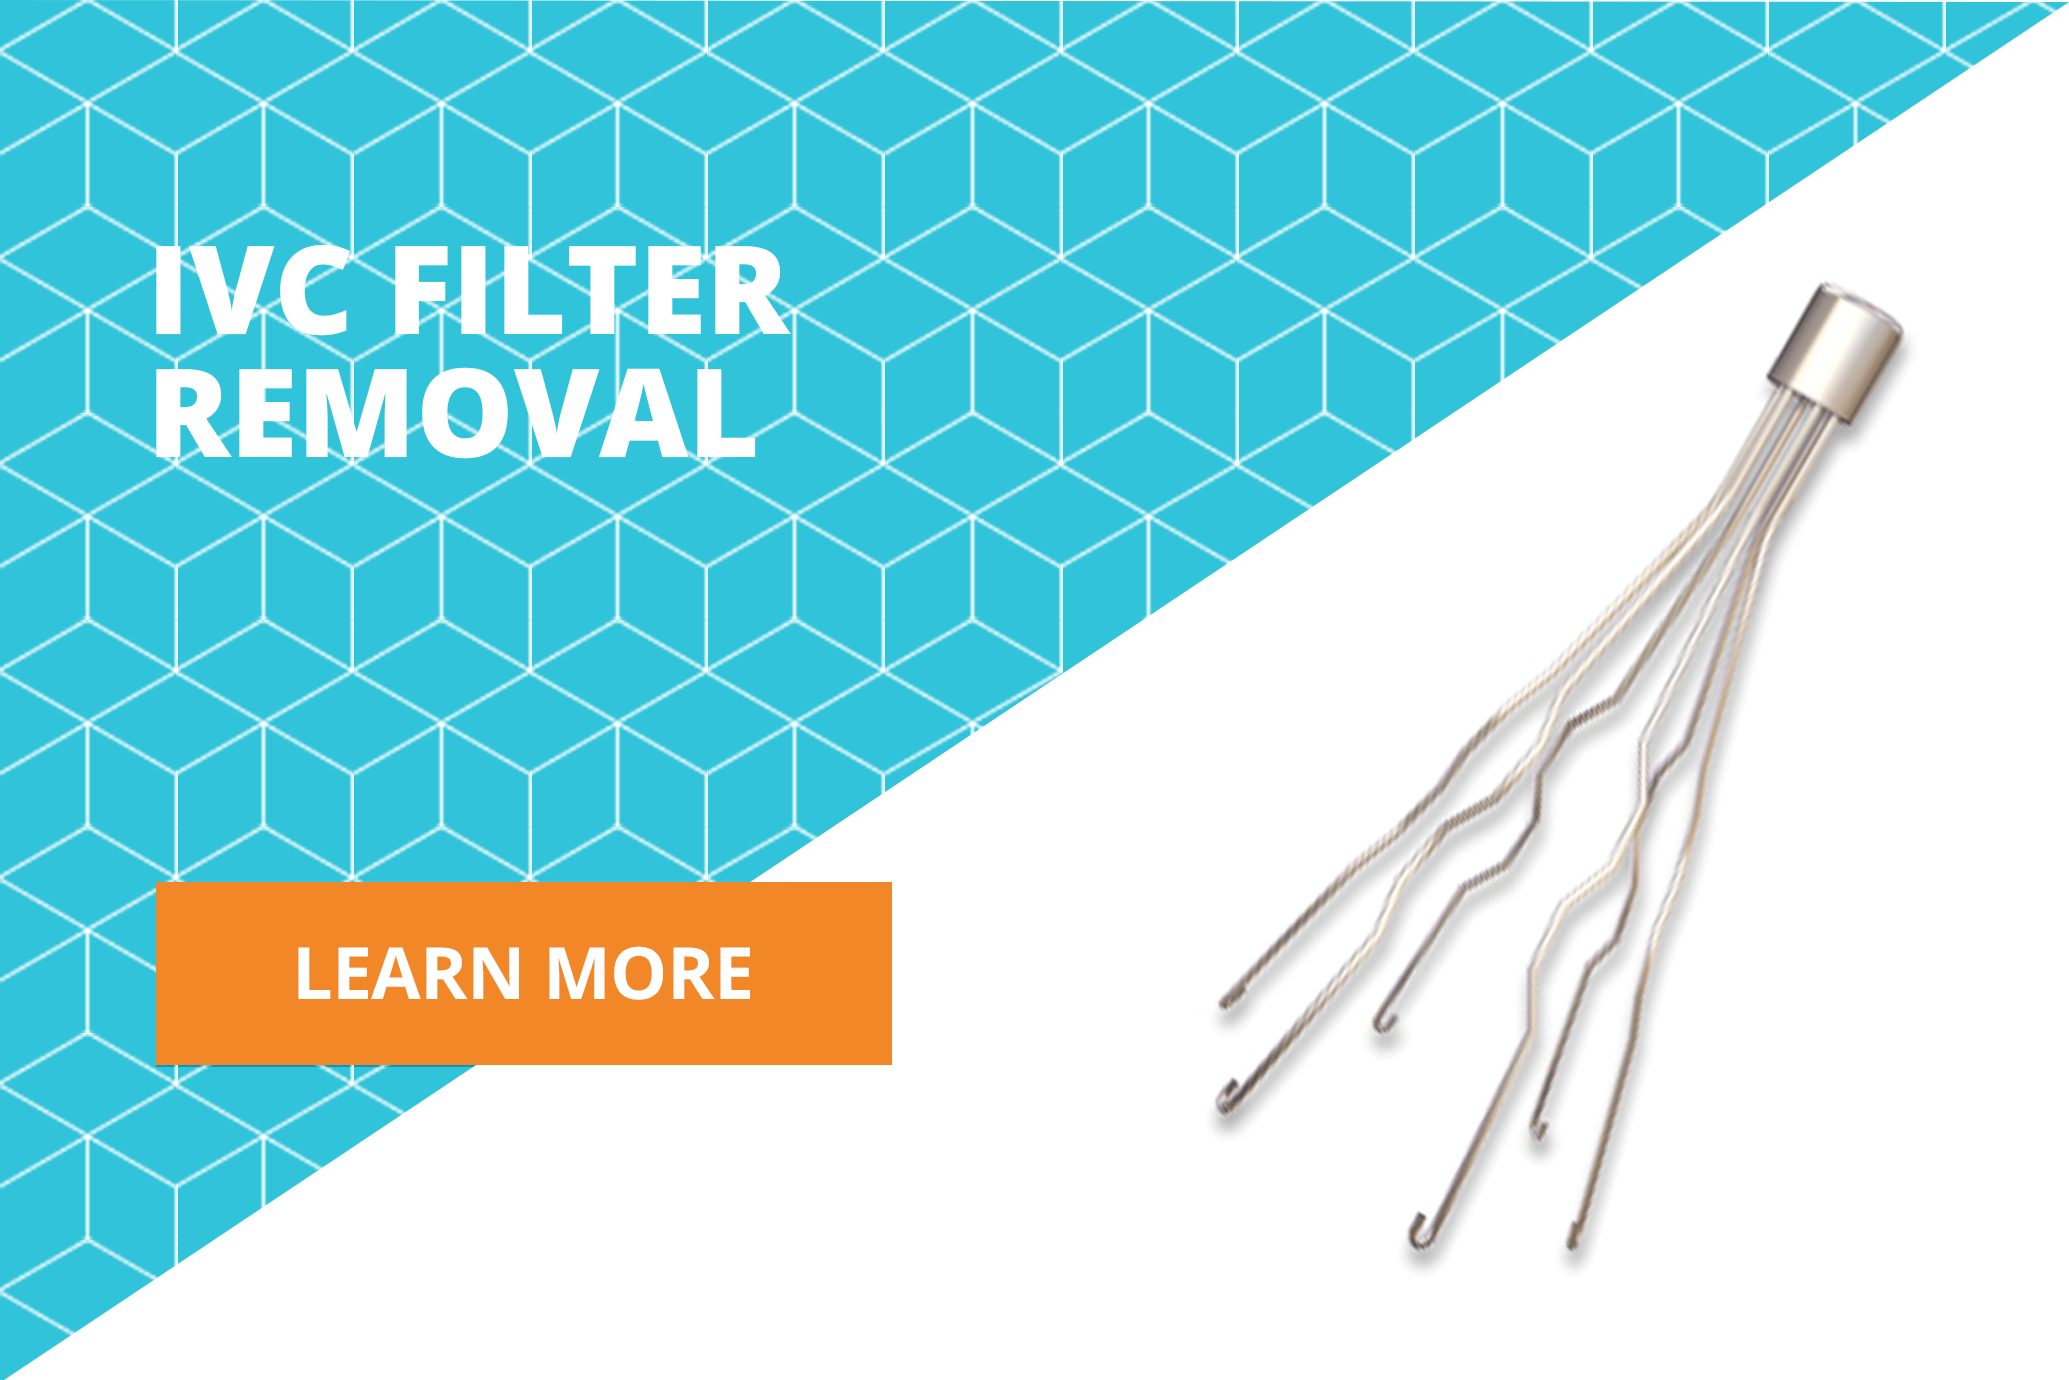 learn more about IVC filter removal surgery